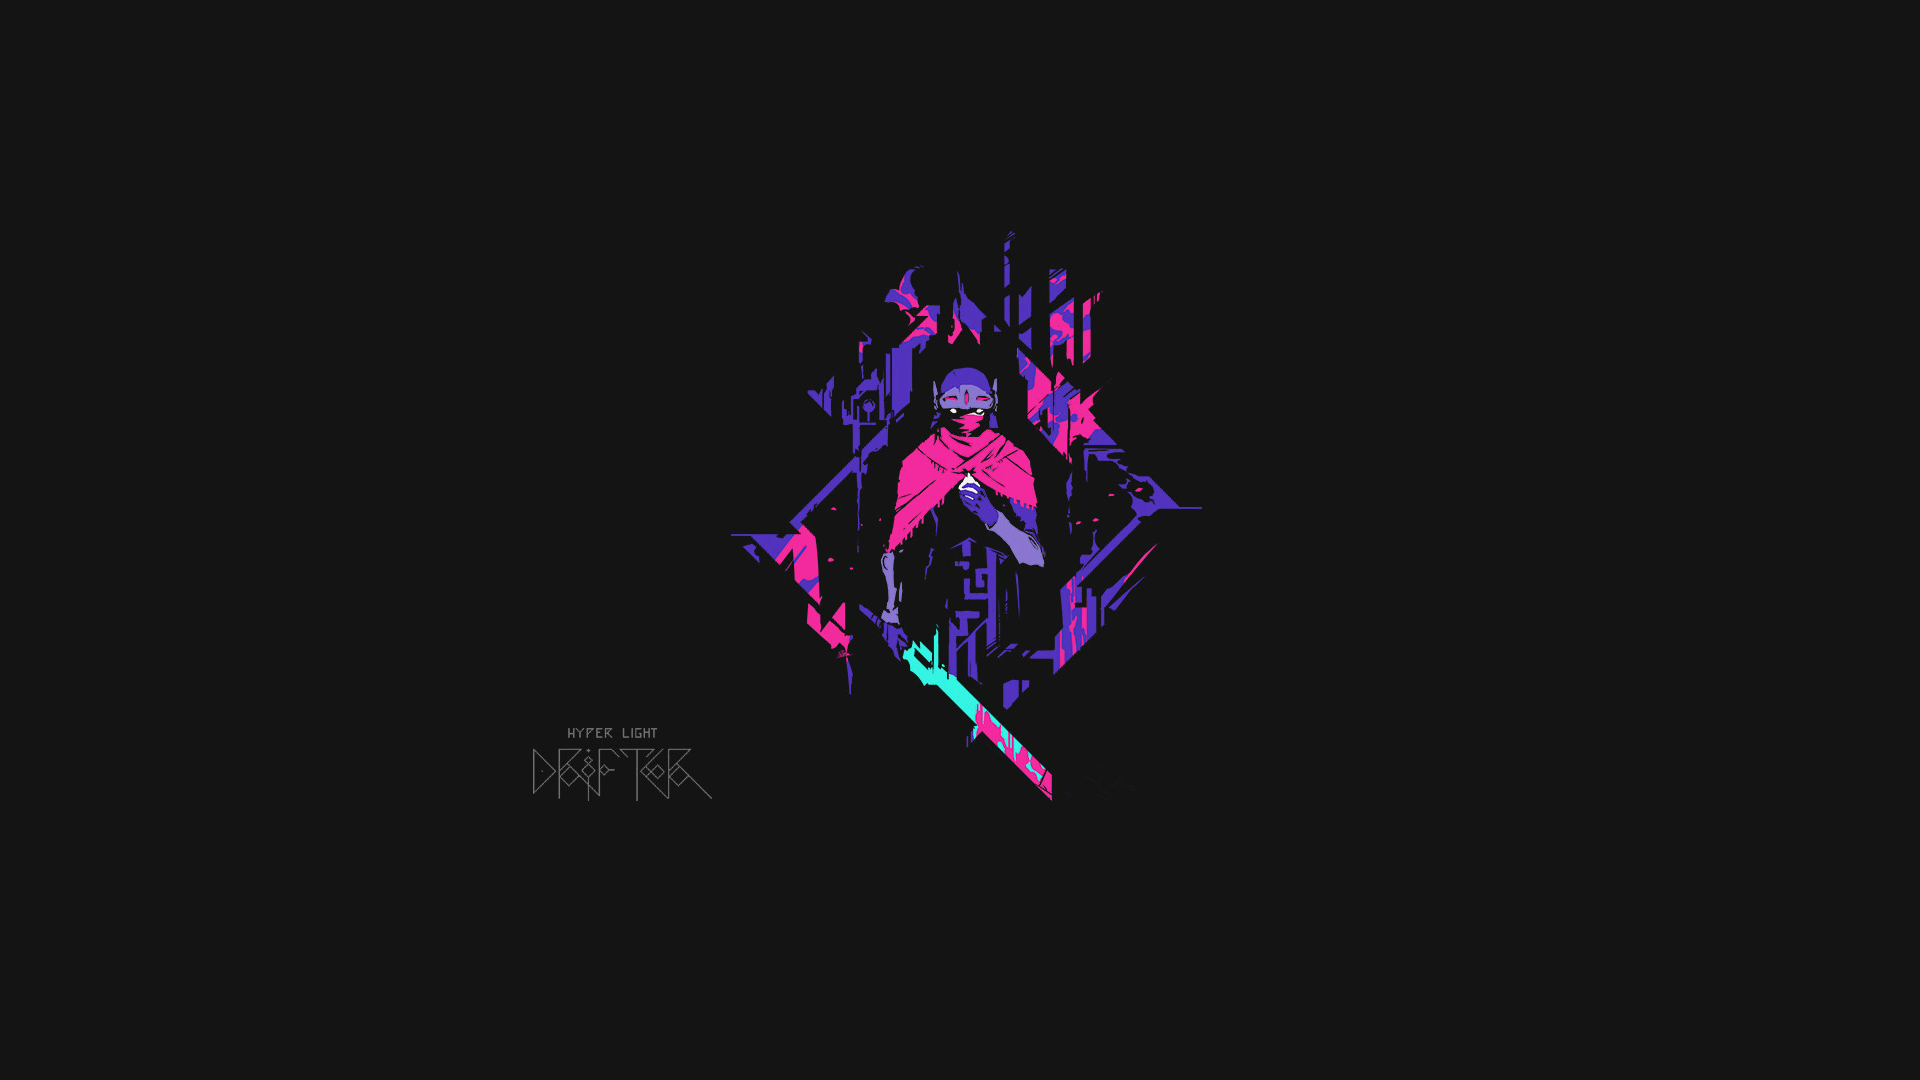 Hyper Light Drifter HD Wallpapers and Background Images.